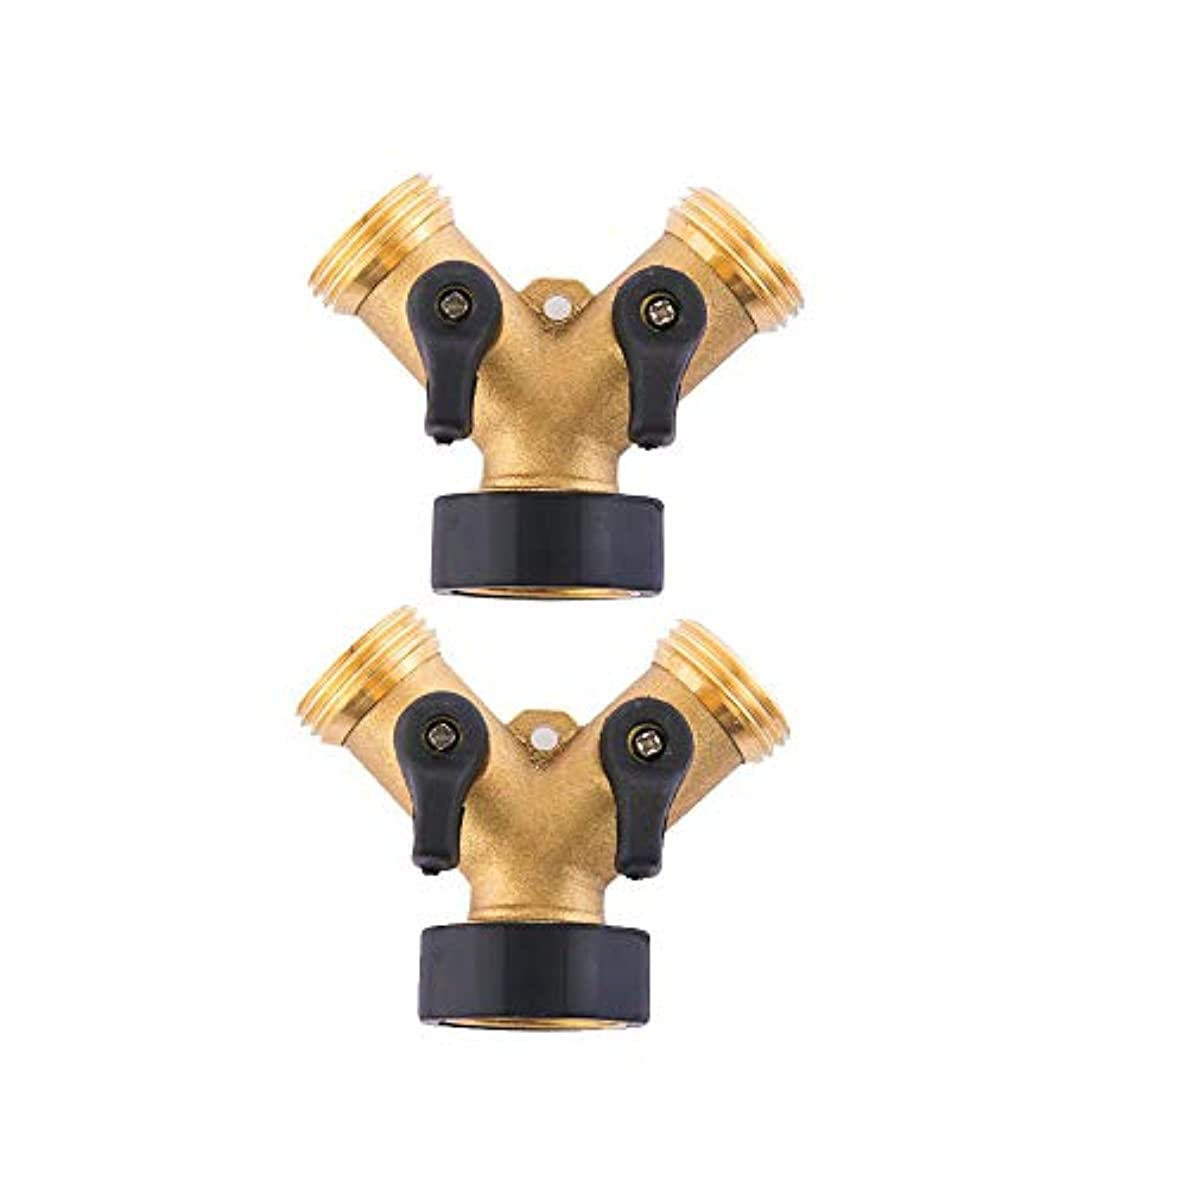 HQMPC Heavy Duty Brass Hose Y-Connector Two Way Valve with Shut-Off Valves Brass Hose Splitter (2)